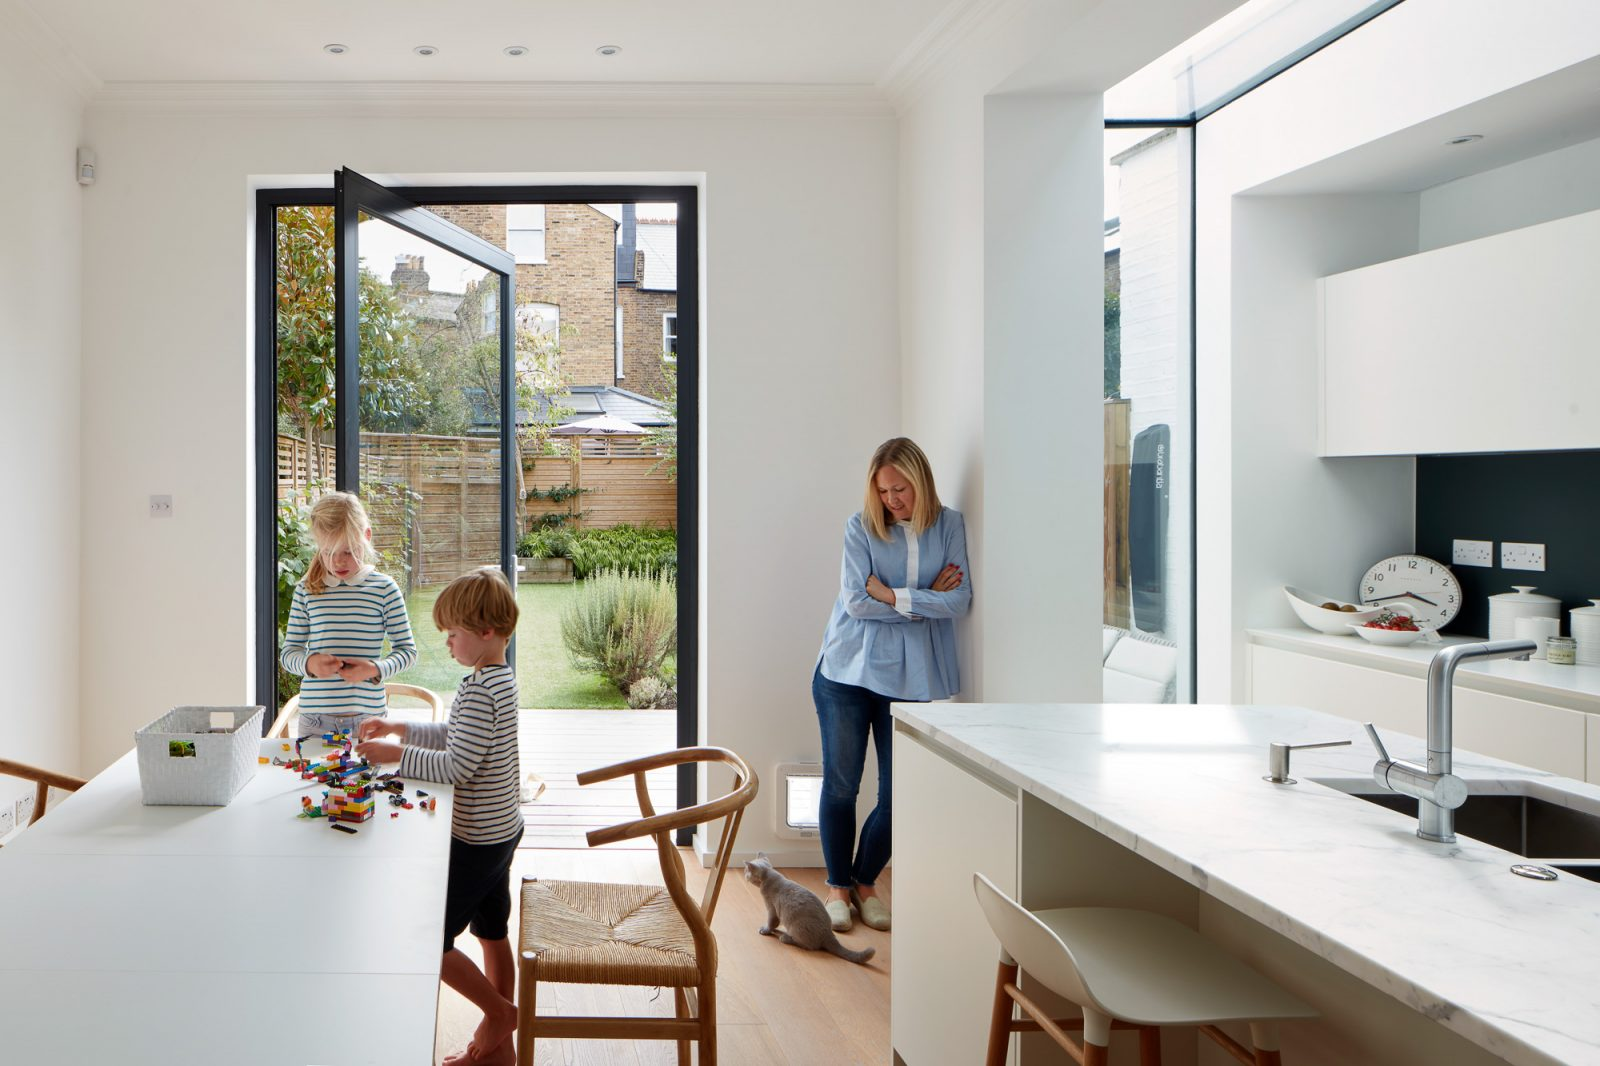 South London Home designed by Cox architect, shot by Matt Clayton architectural photographer